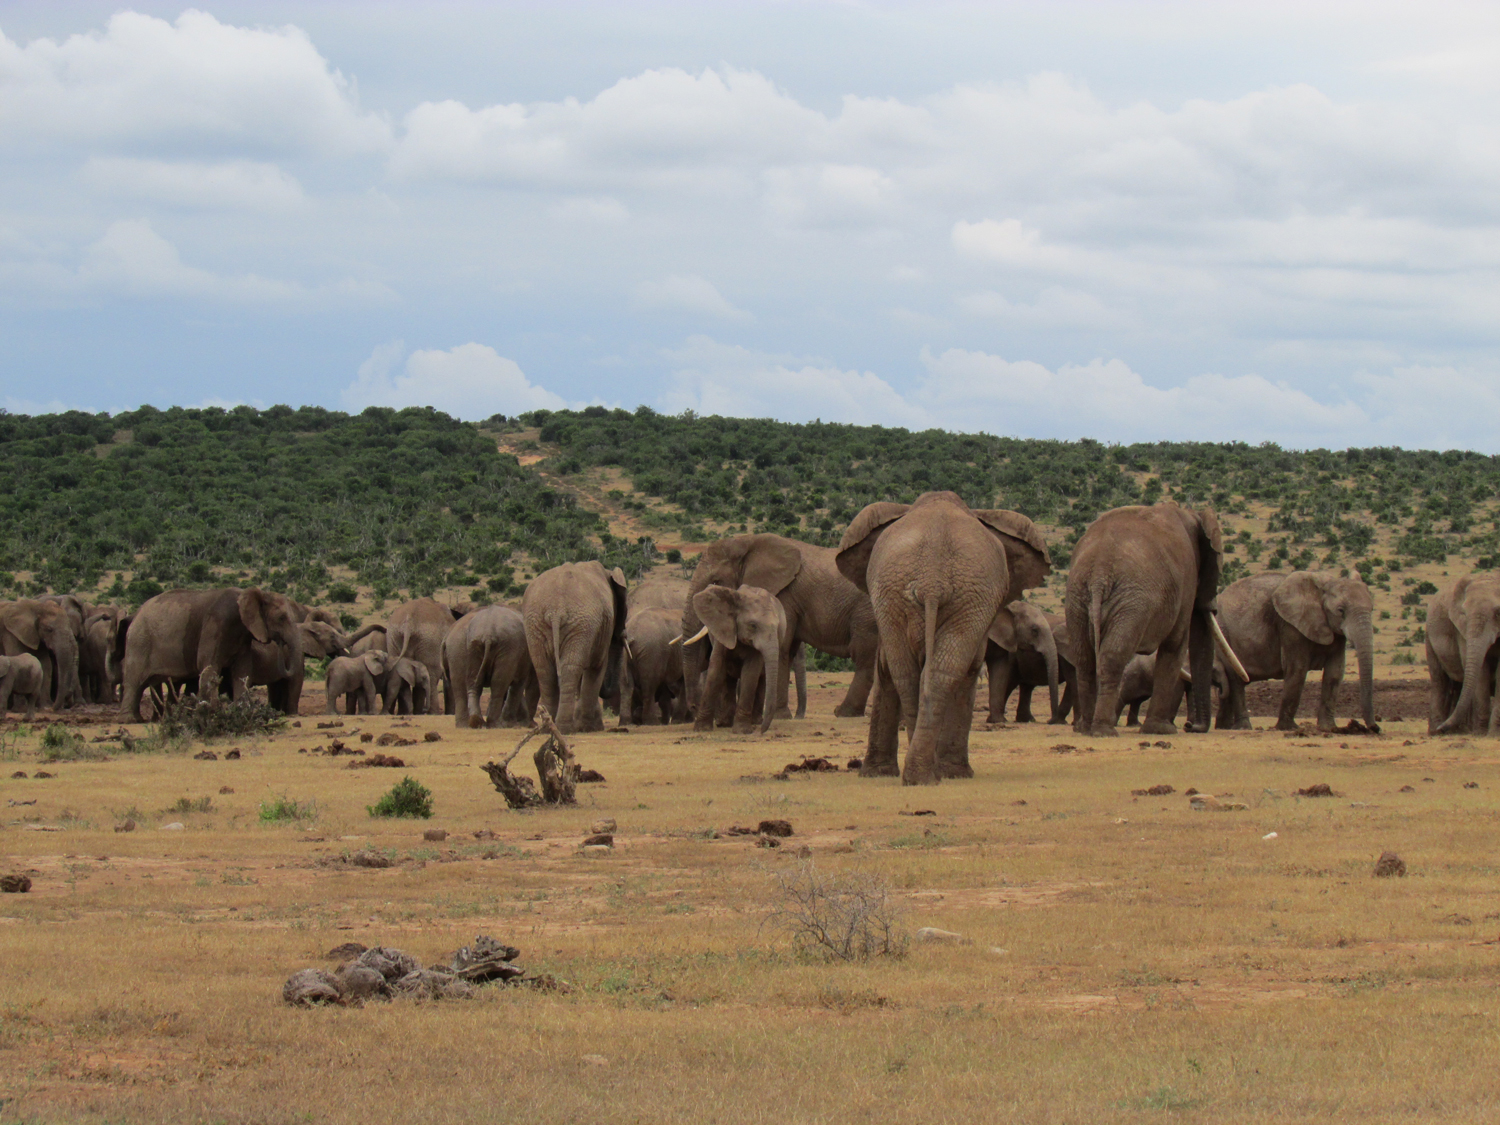 Addo-Elephant-National-Park-Exclusive-Tours-elephant-herd-1